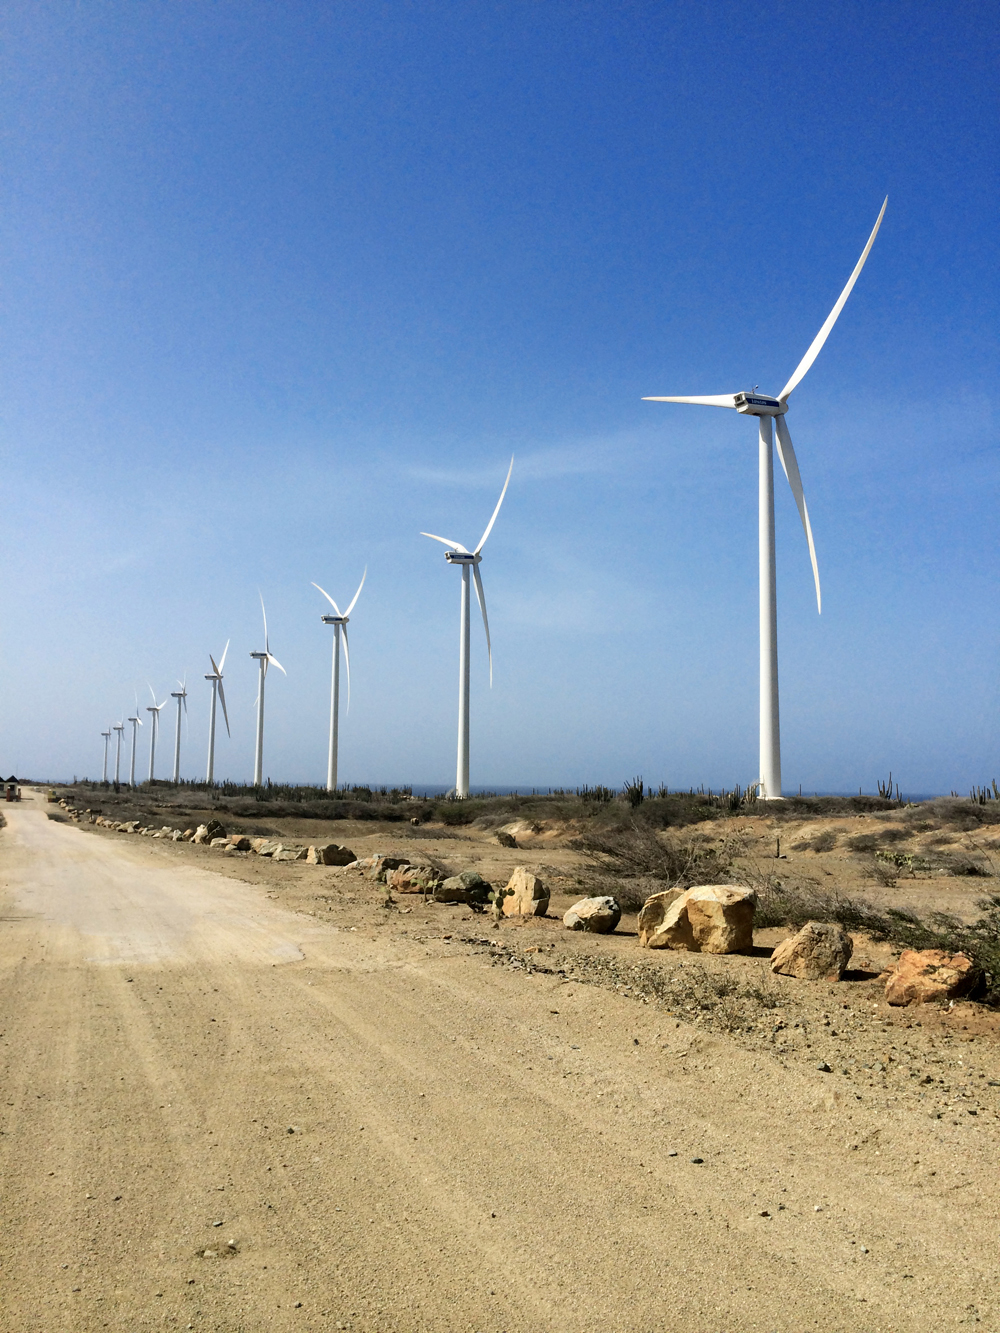 Belive it or not, Aruba's energy is solely generated from these Windmills.